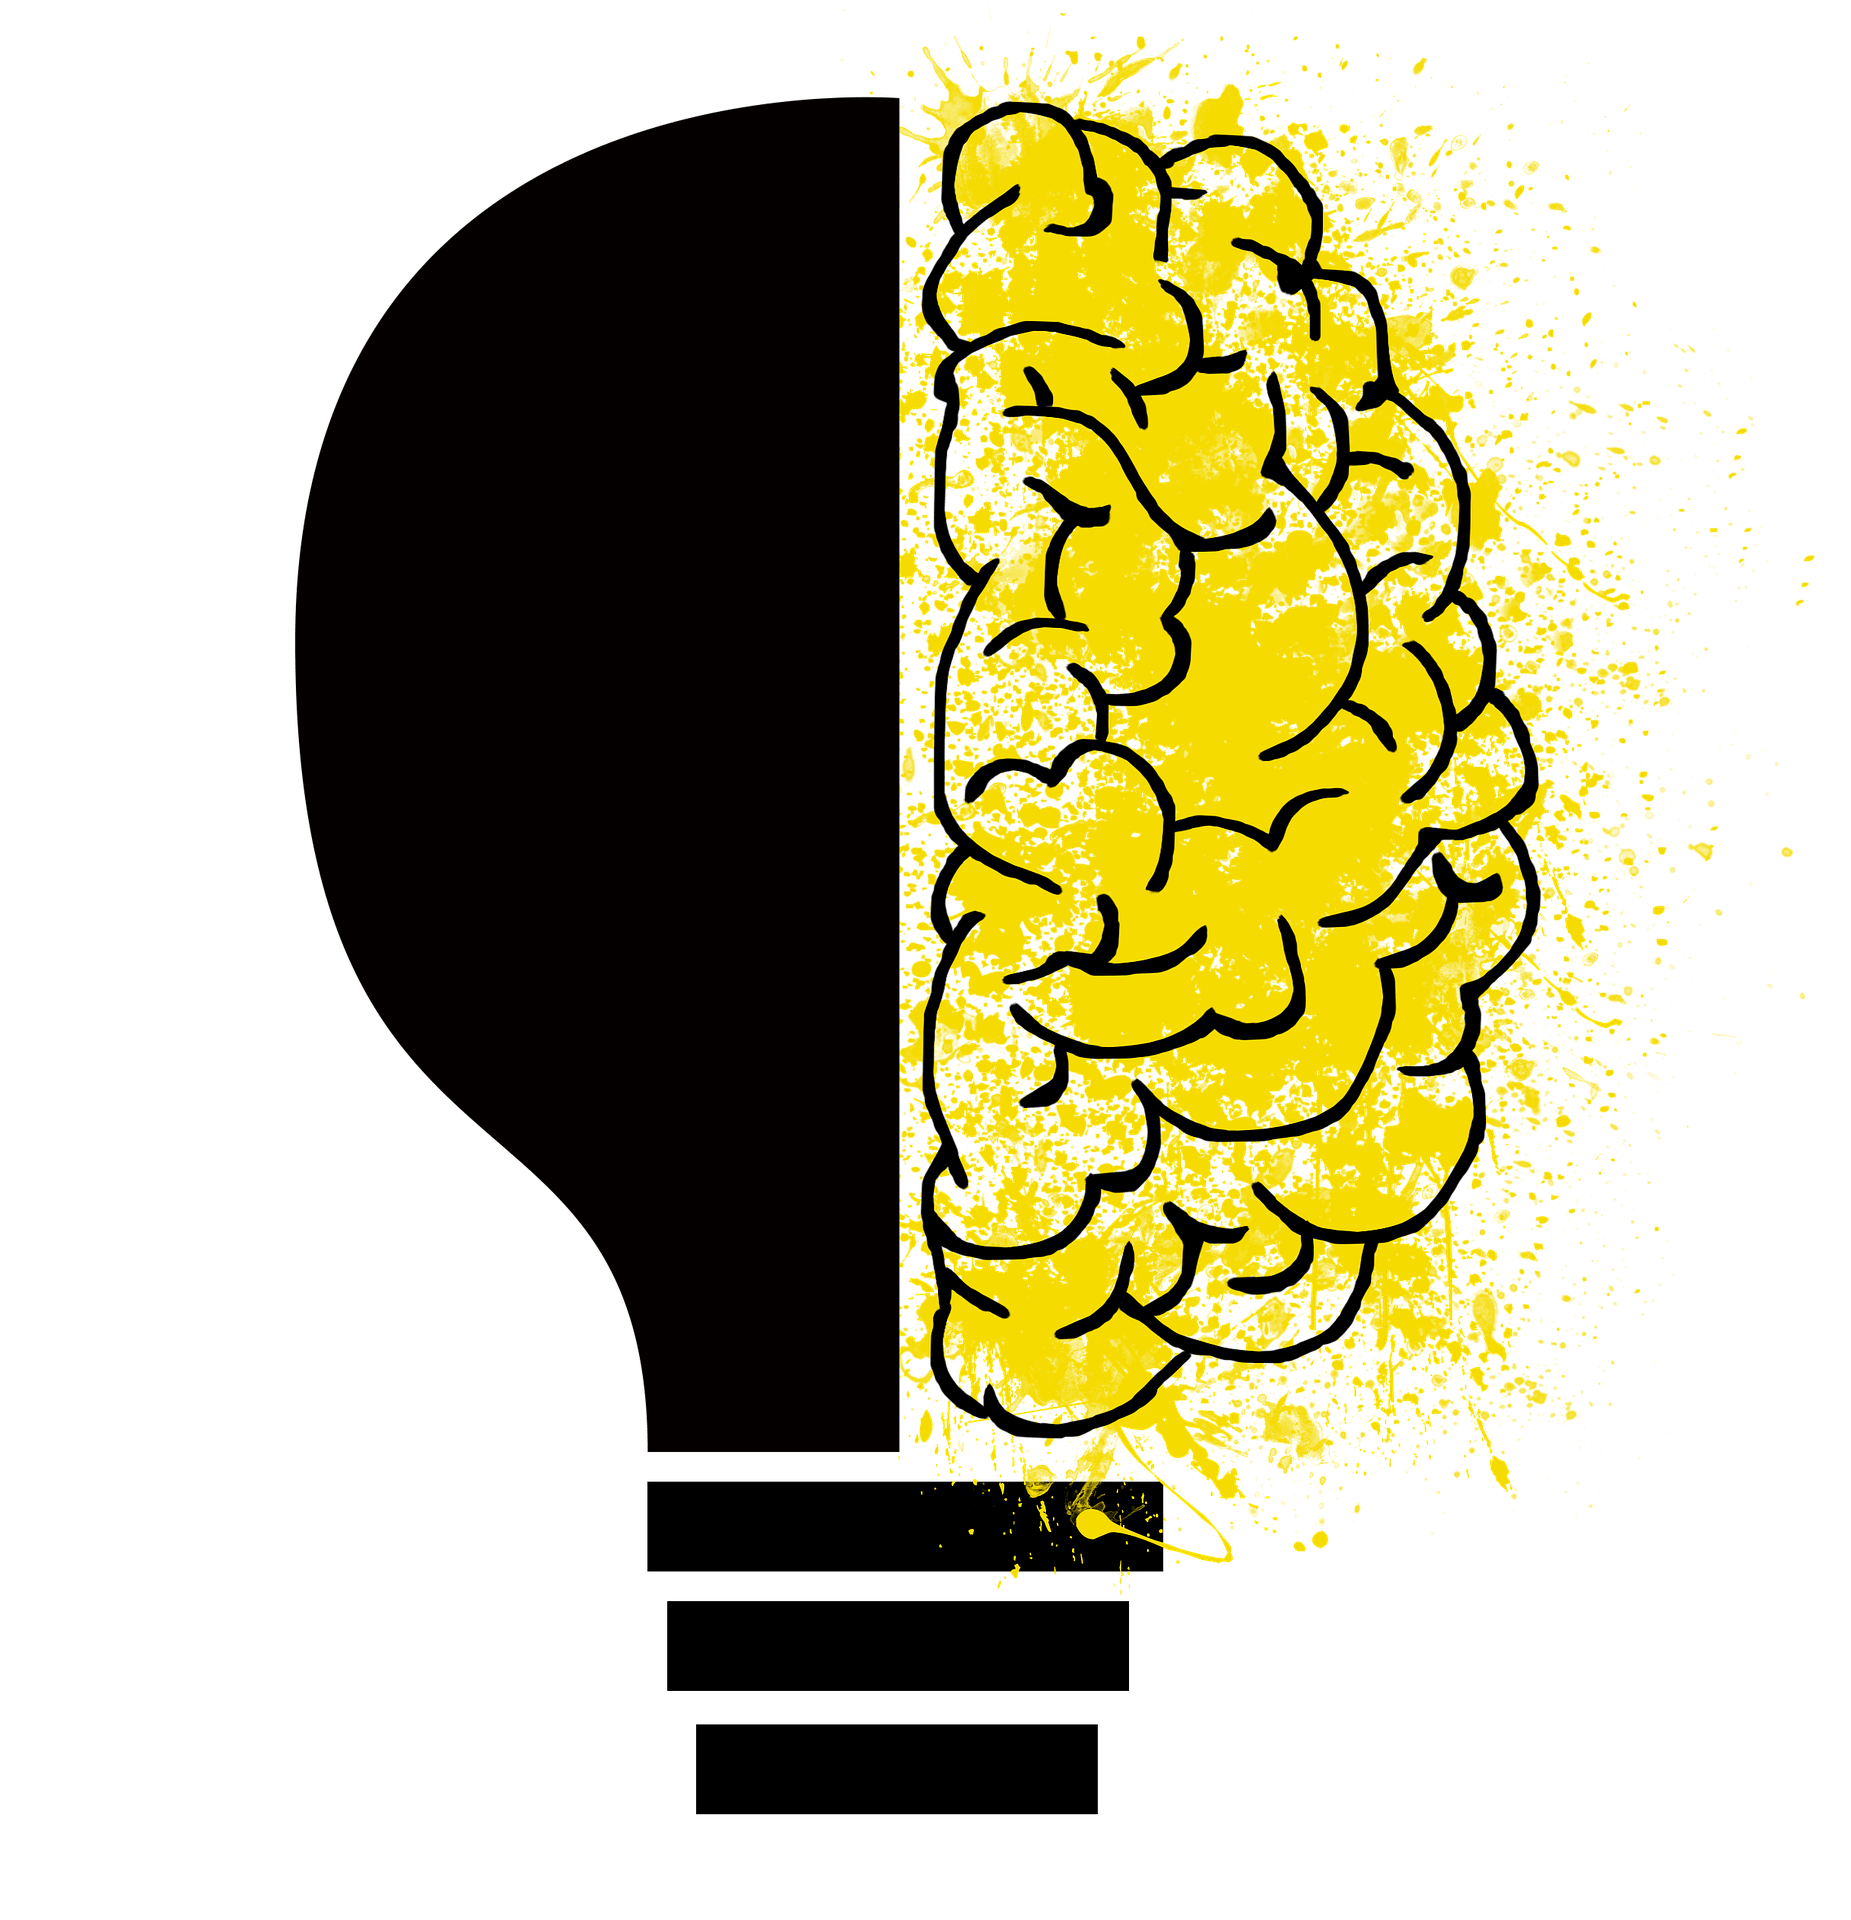 Image of lightbulb with brain drawing